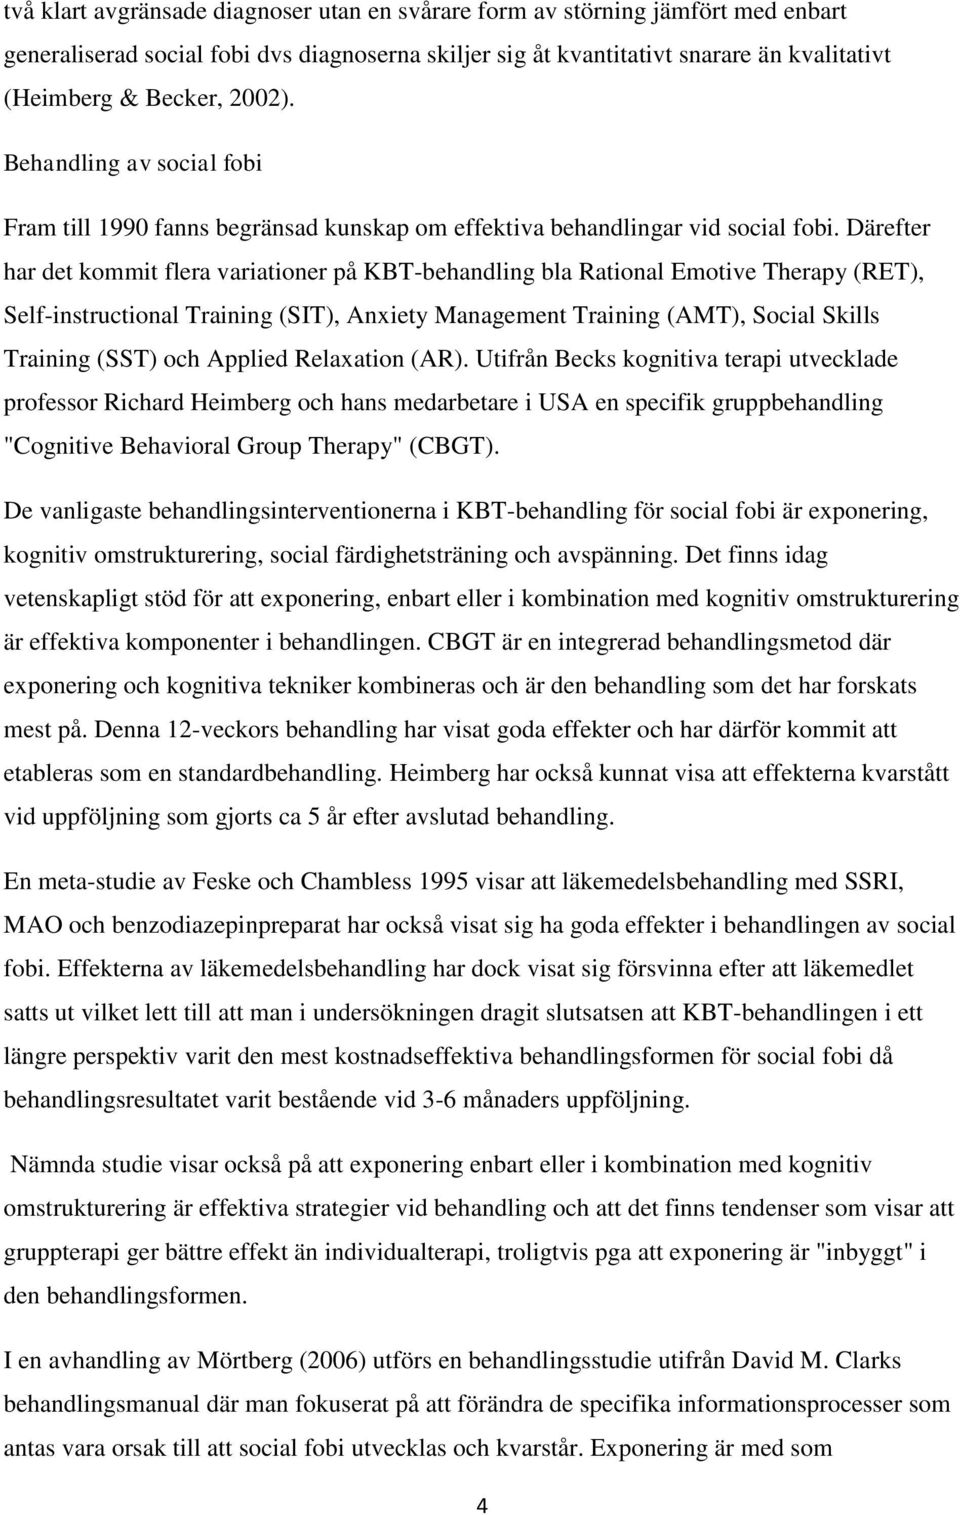 Därefter har det kommit flera variationer på KBT-behandling bla Rational Emotive Therapy (RET), Self-instructional Training (SIT), Anxiety Management Training (AMT), Social Skills Training (SST) och